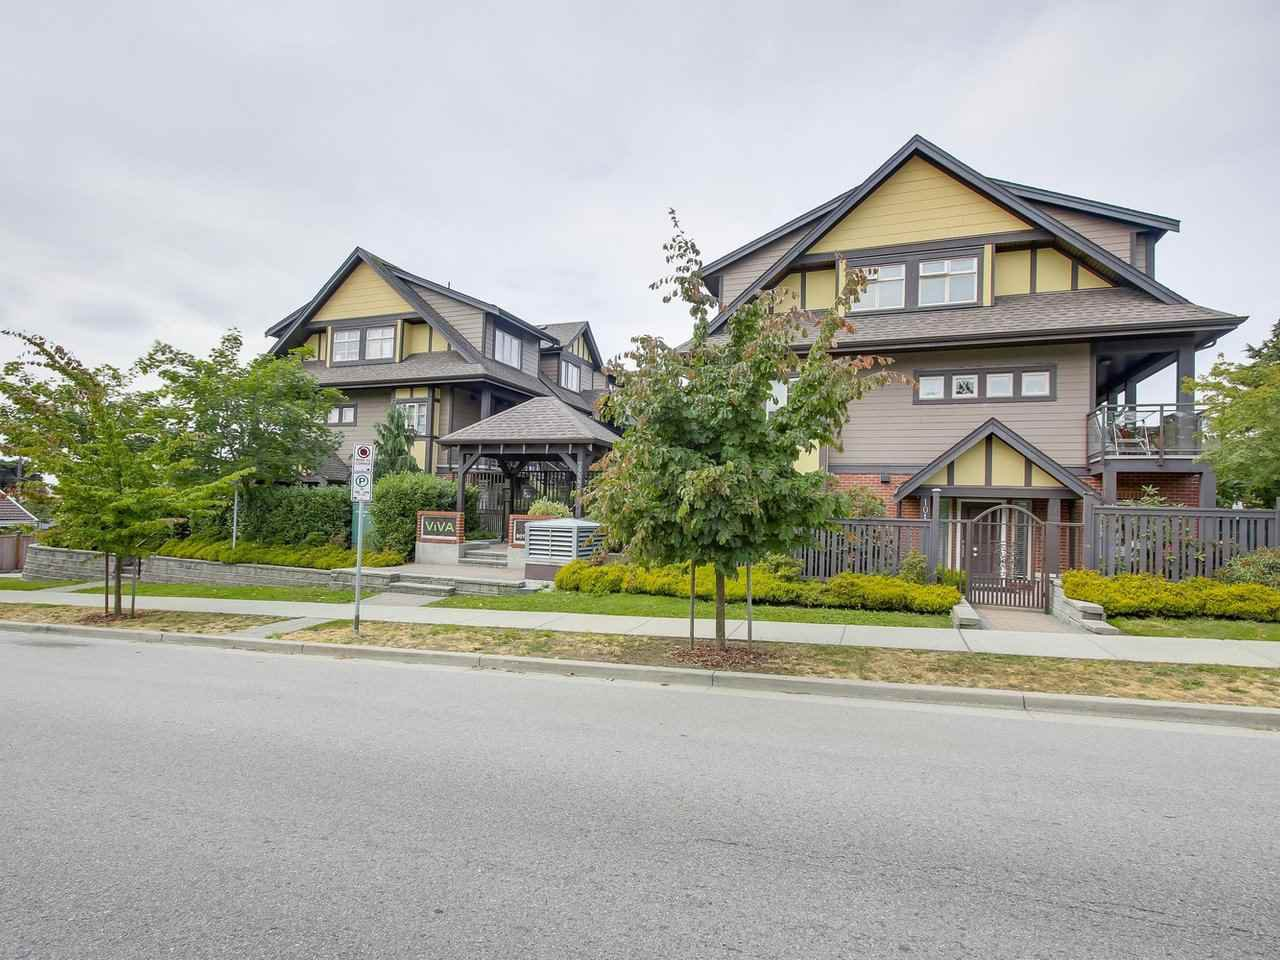 Main Photo: 106 7227 ROYAL OAK Avenue in Burnaby: Metrotown Townhouse for sale (Burnaby South)  : MLS®# R2198783